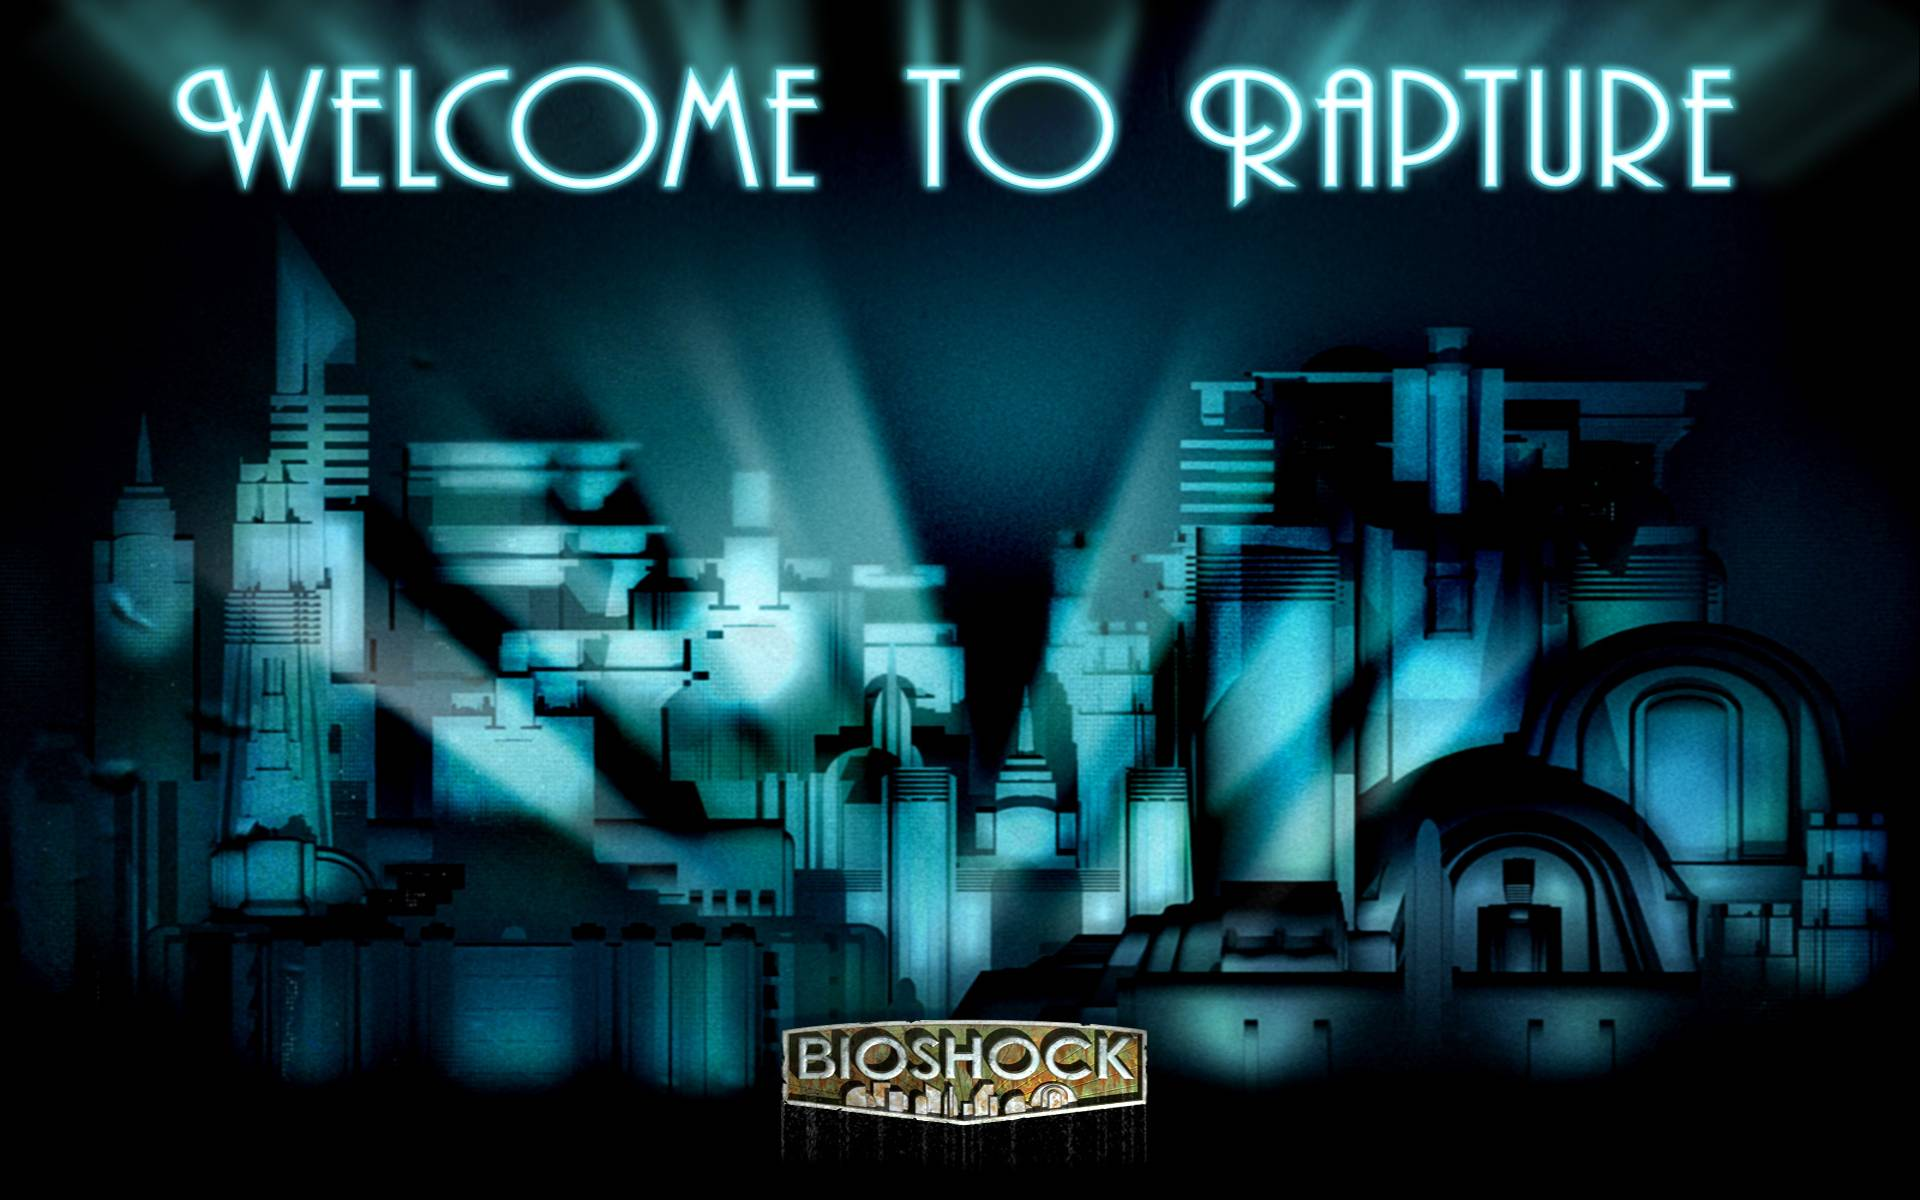 Rapture 1920x1200, Top on B.SCB Wallpapers